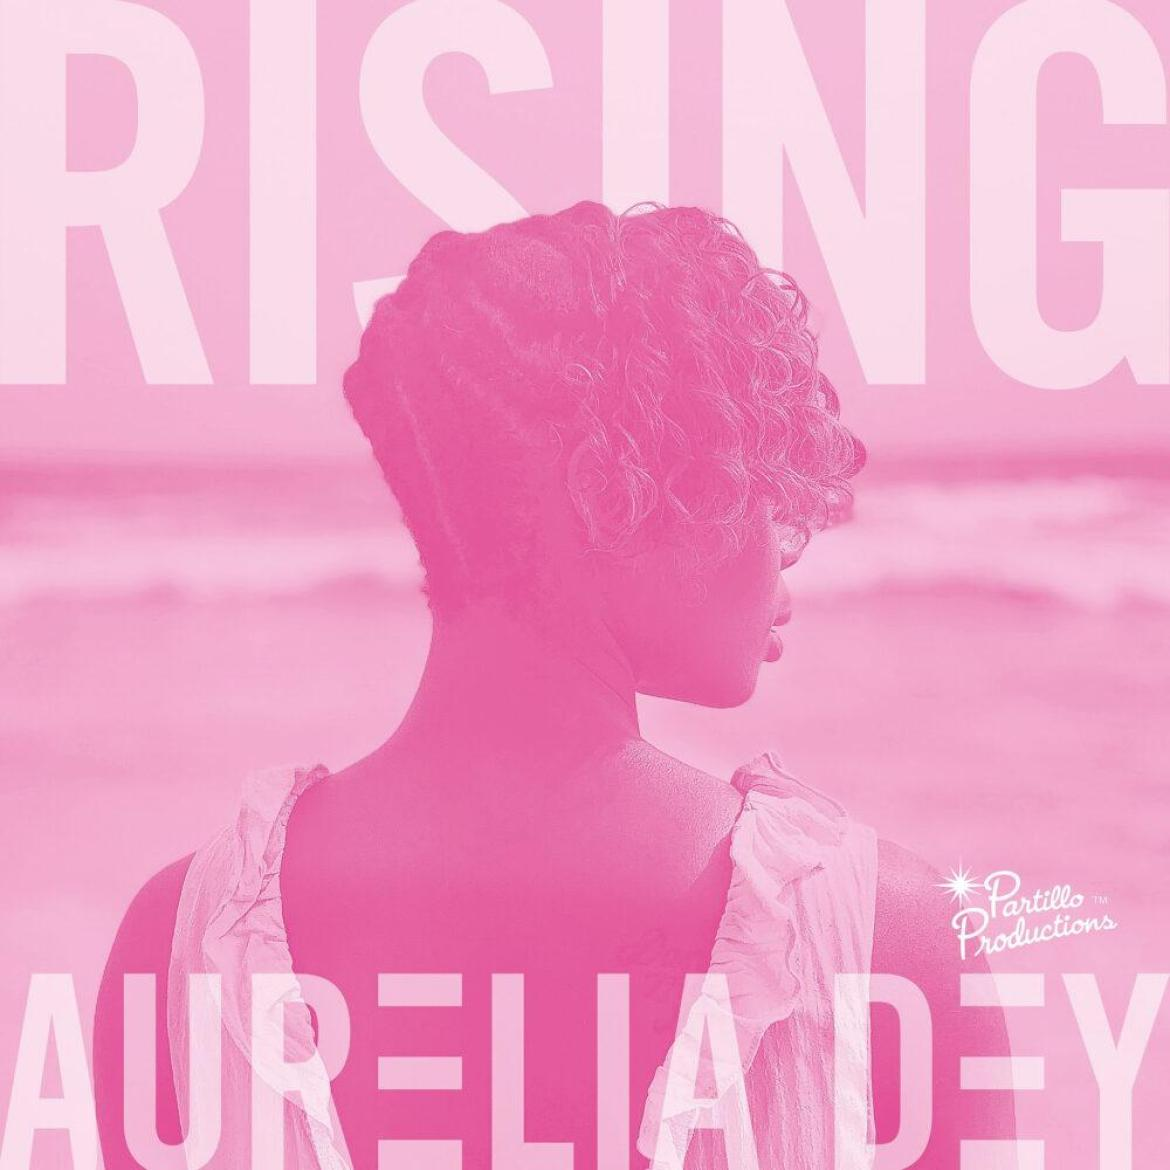 Aurelia Dey Drops New Crisis Anthem – The Song Rising Spreads A Message Of Hope